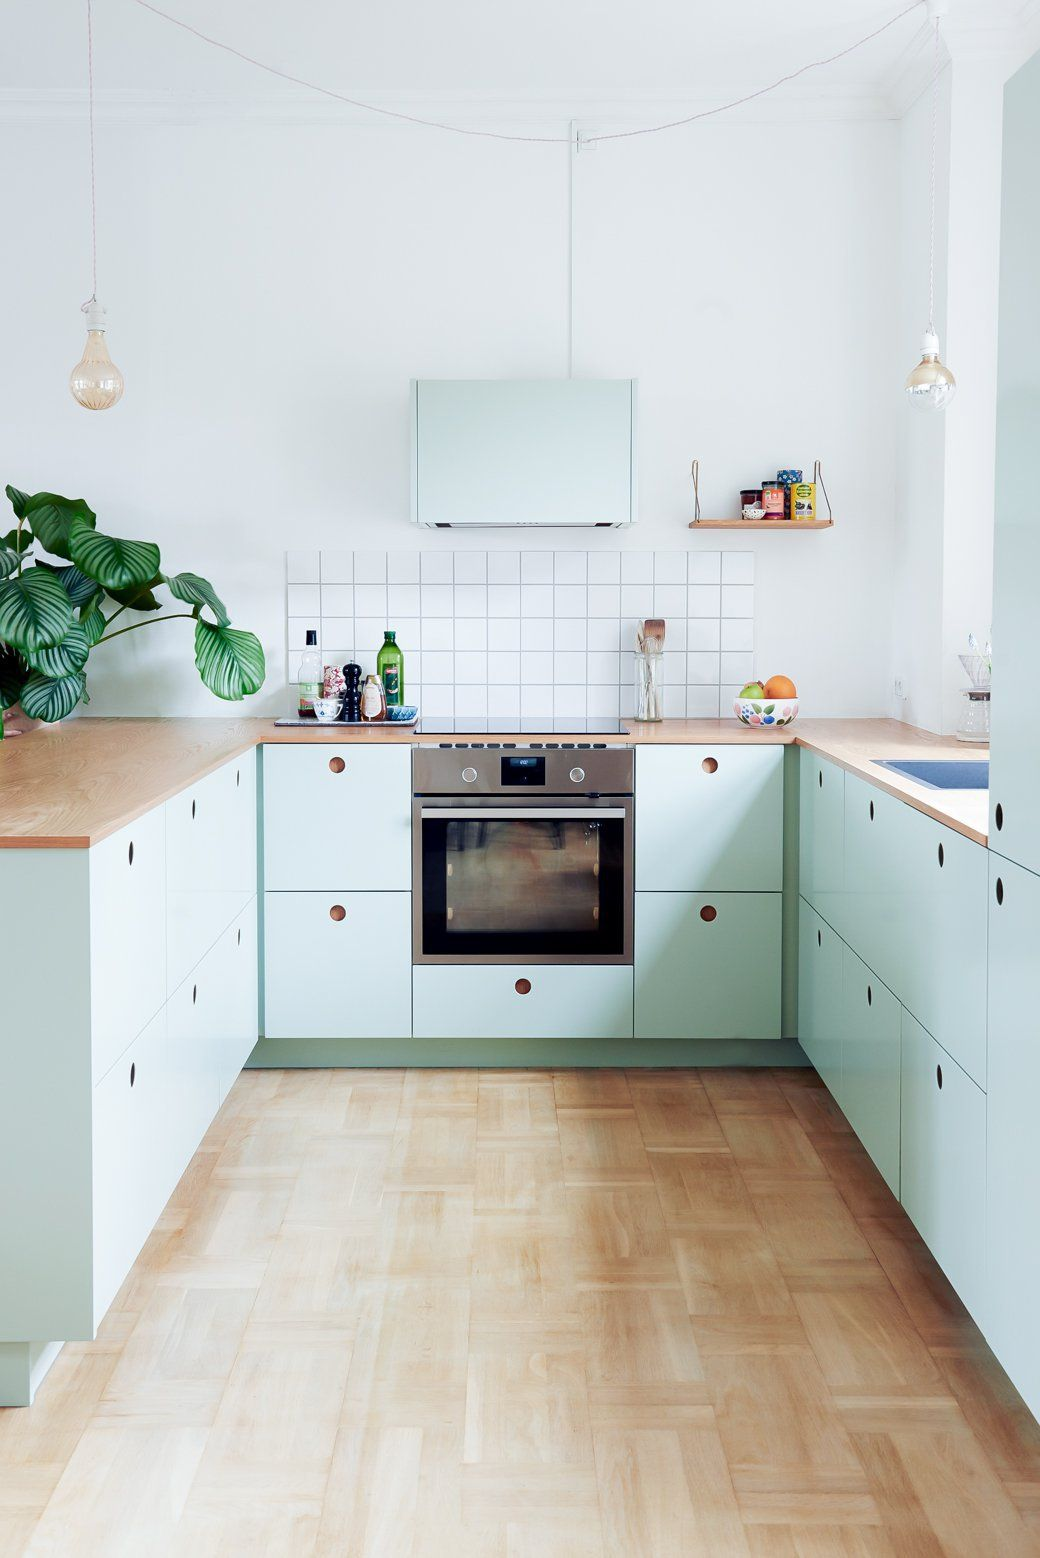 Ikea Kitchen Hack In Mint Green Decor8 Modern Kitchen Upgrades Kitchens Without Upper Cabinets Kitchen Design